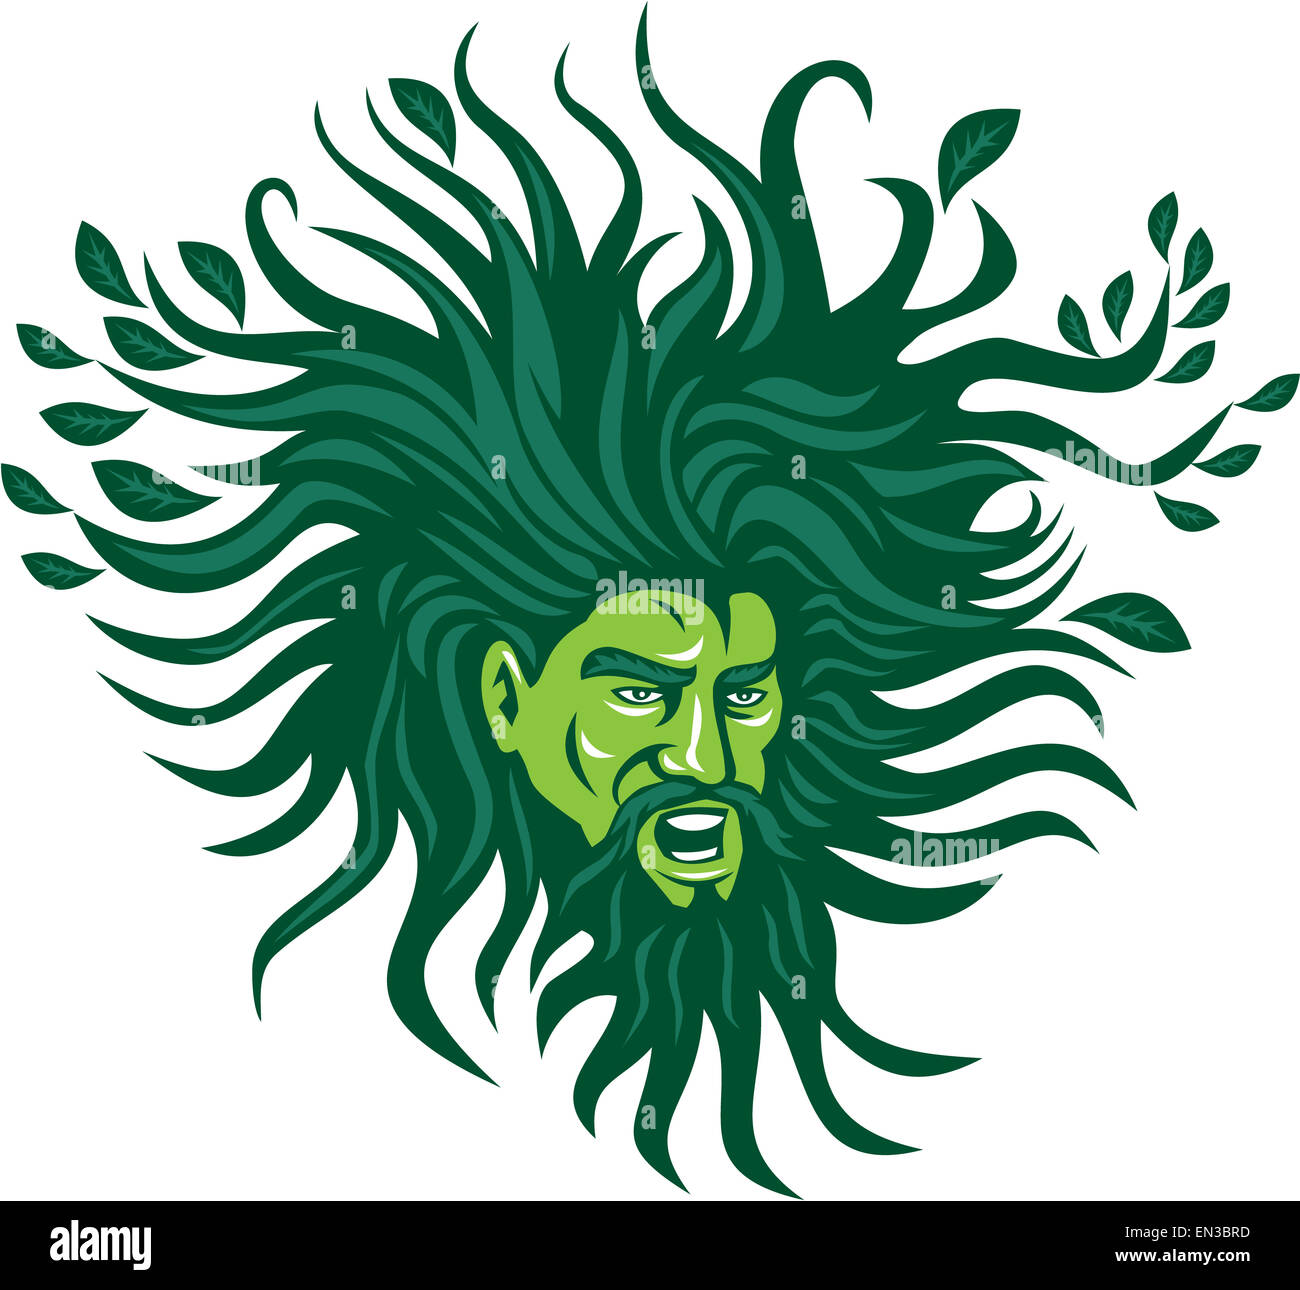 Illustration of a Green Man head face with flowing hair and leaves growing at tips viewed from front don ein cartoon - Stock Image